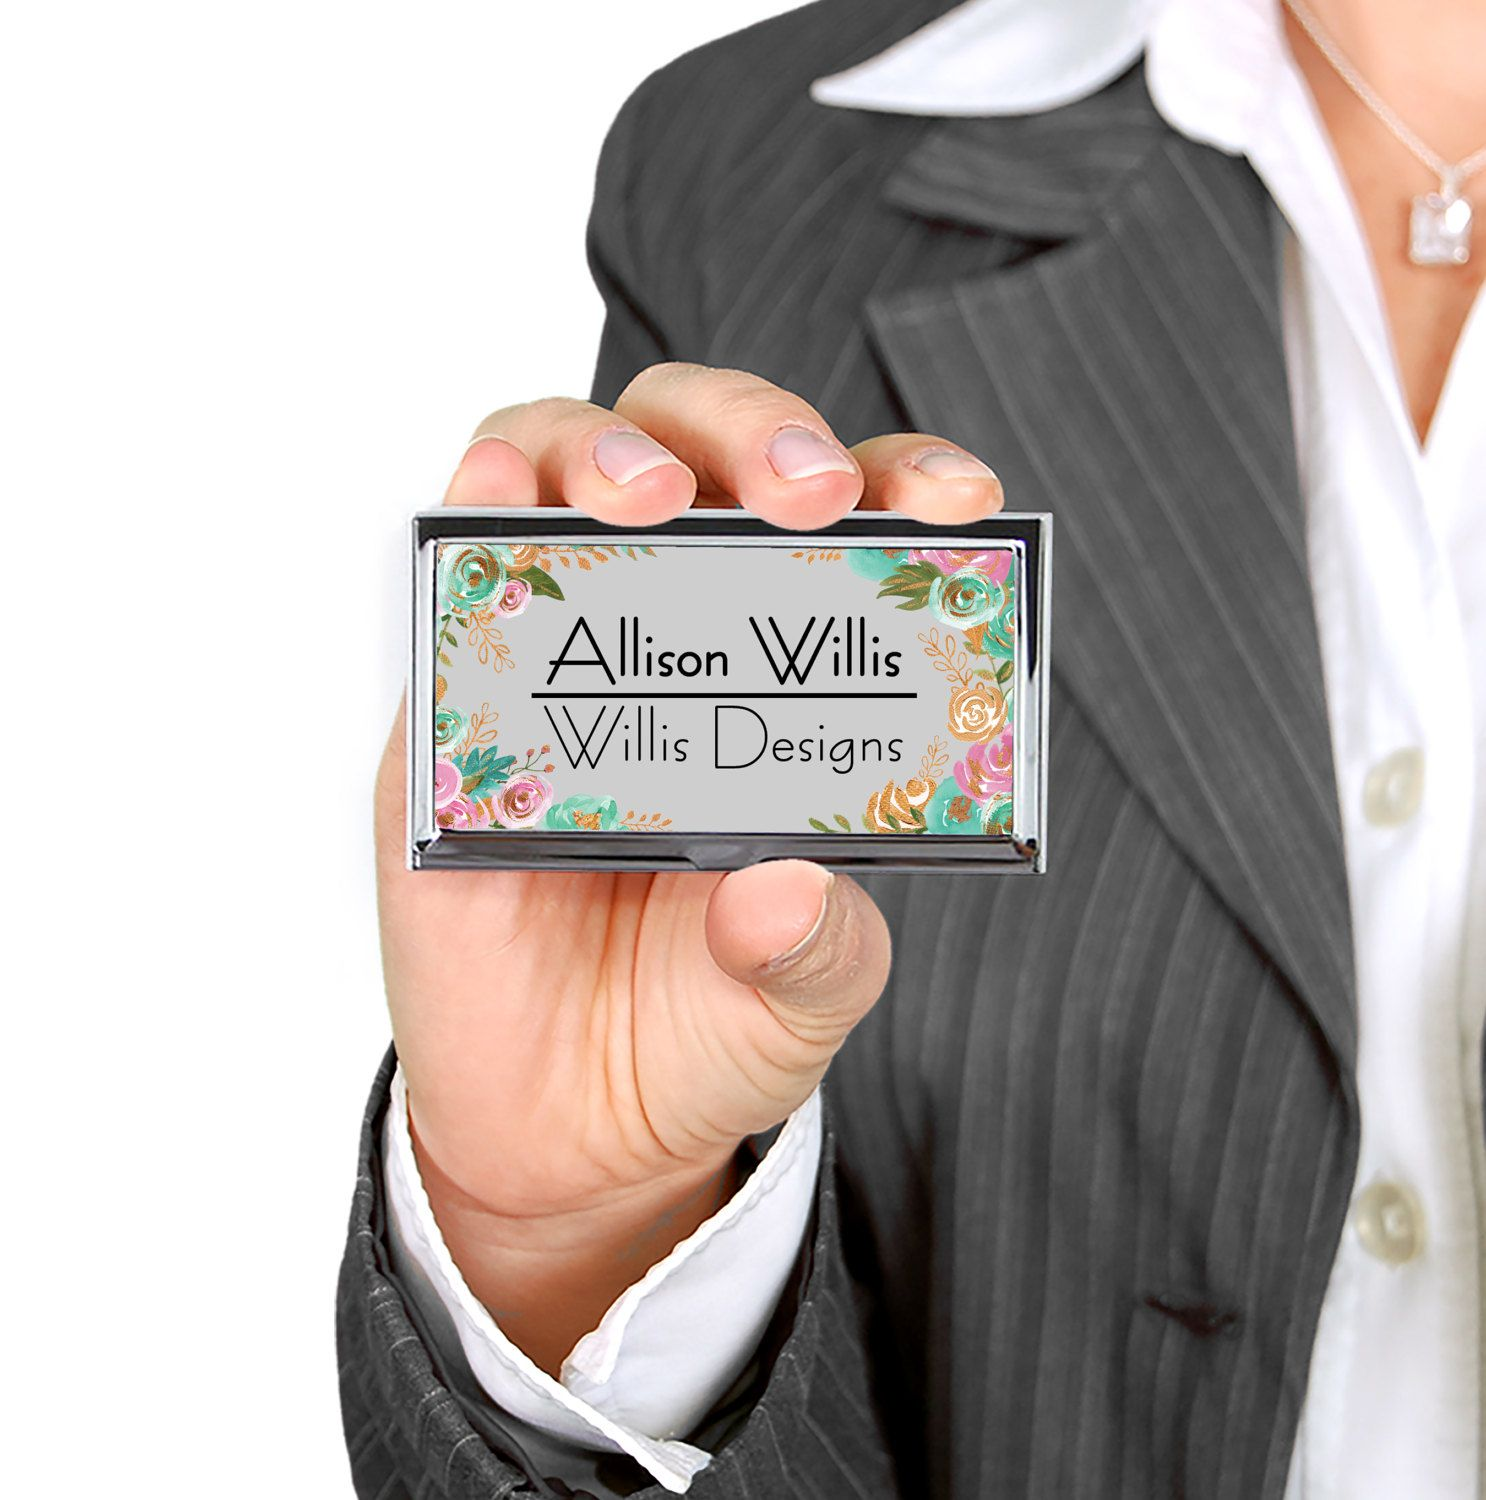 Personalized business card case custom business card holder personalized business card case custom business card holder graduation gift promotional items classy floral design business reheart Choice Image